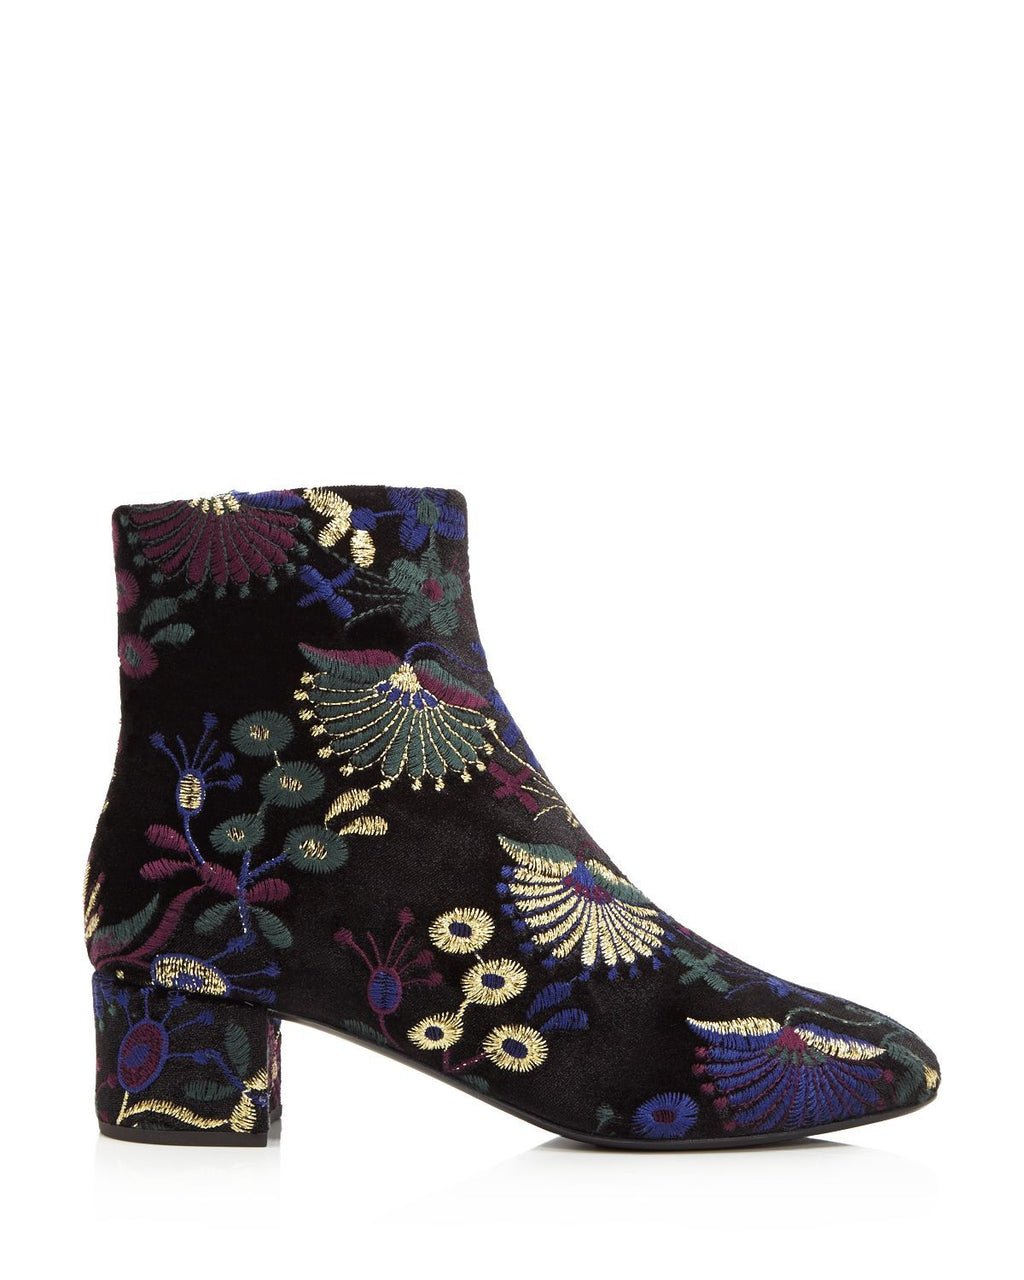 Giuseppe Zanotti Women's Embroidered Velvet Block Heel Booties